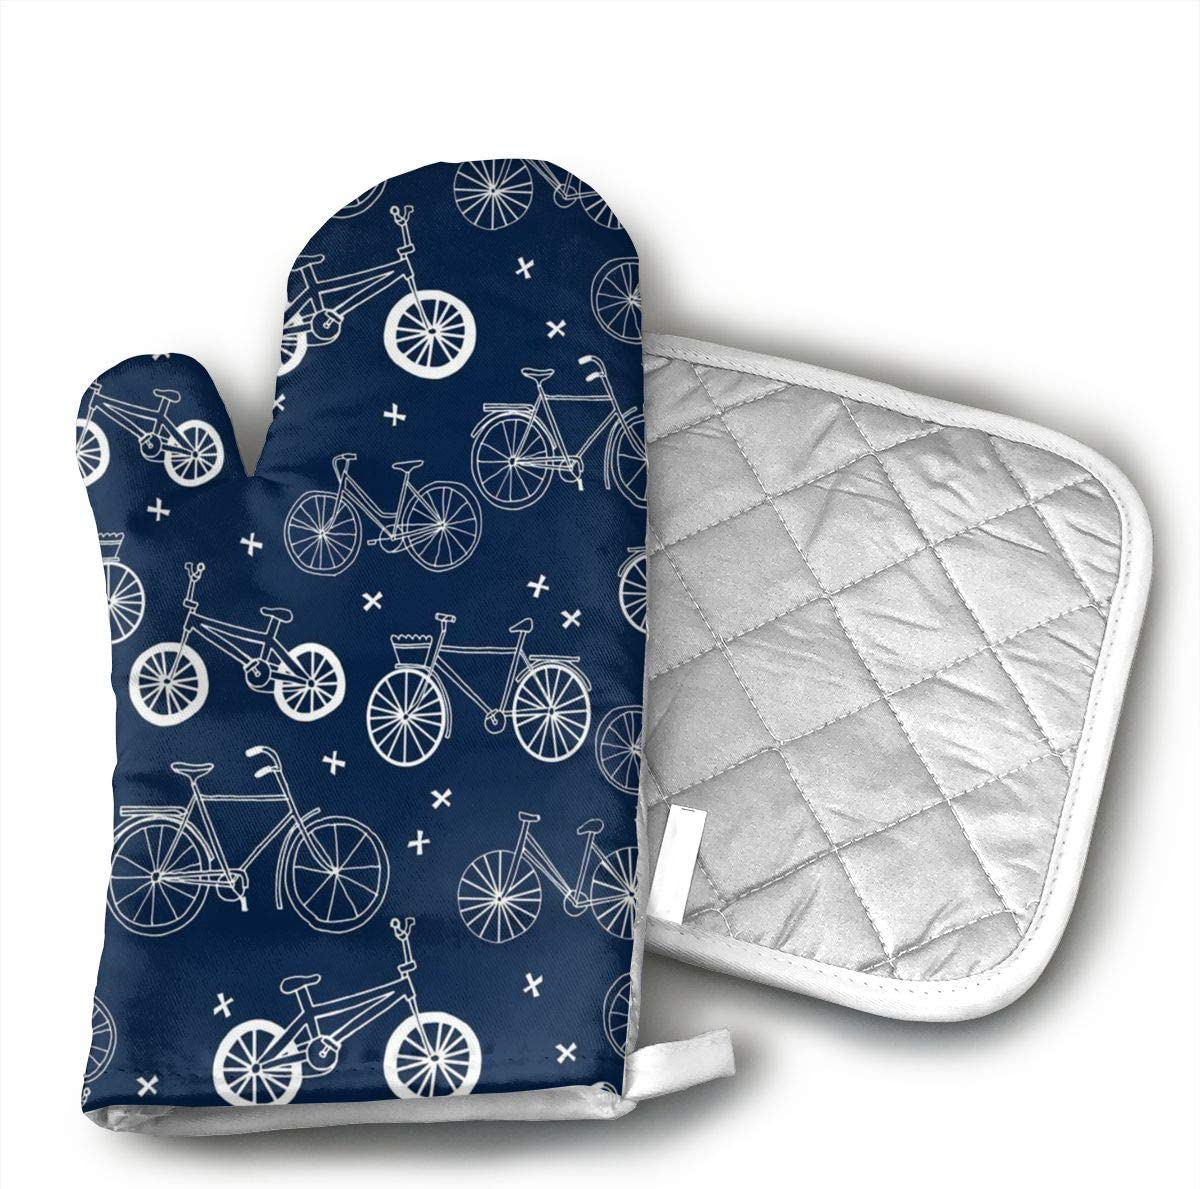 Wiqo9 Hand Drawn Navy Blue Kids Bikes Bicycles Oven Mitts and Pot Holders Kitchen Mitten Cooking Gloves,Cooking, Baking, BBQ.